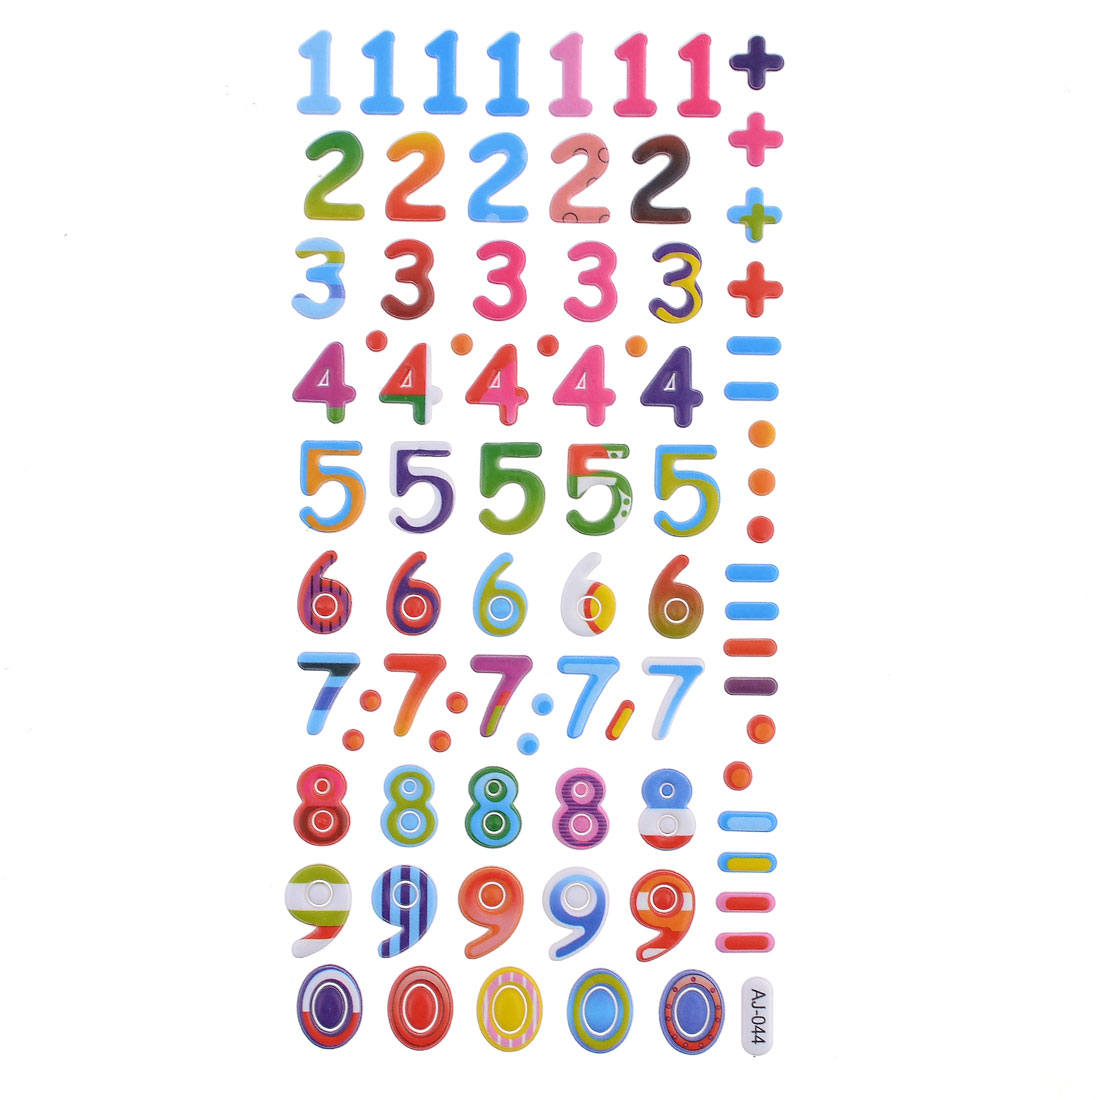 85 in 1 Sheet Colored 0-9 Number Design Glass Window Sticker Decals